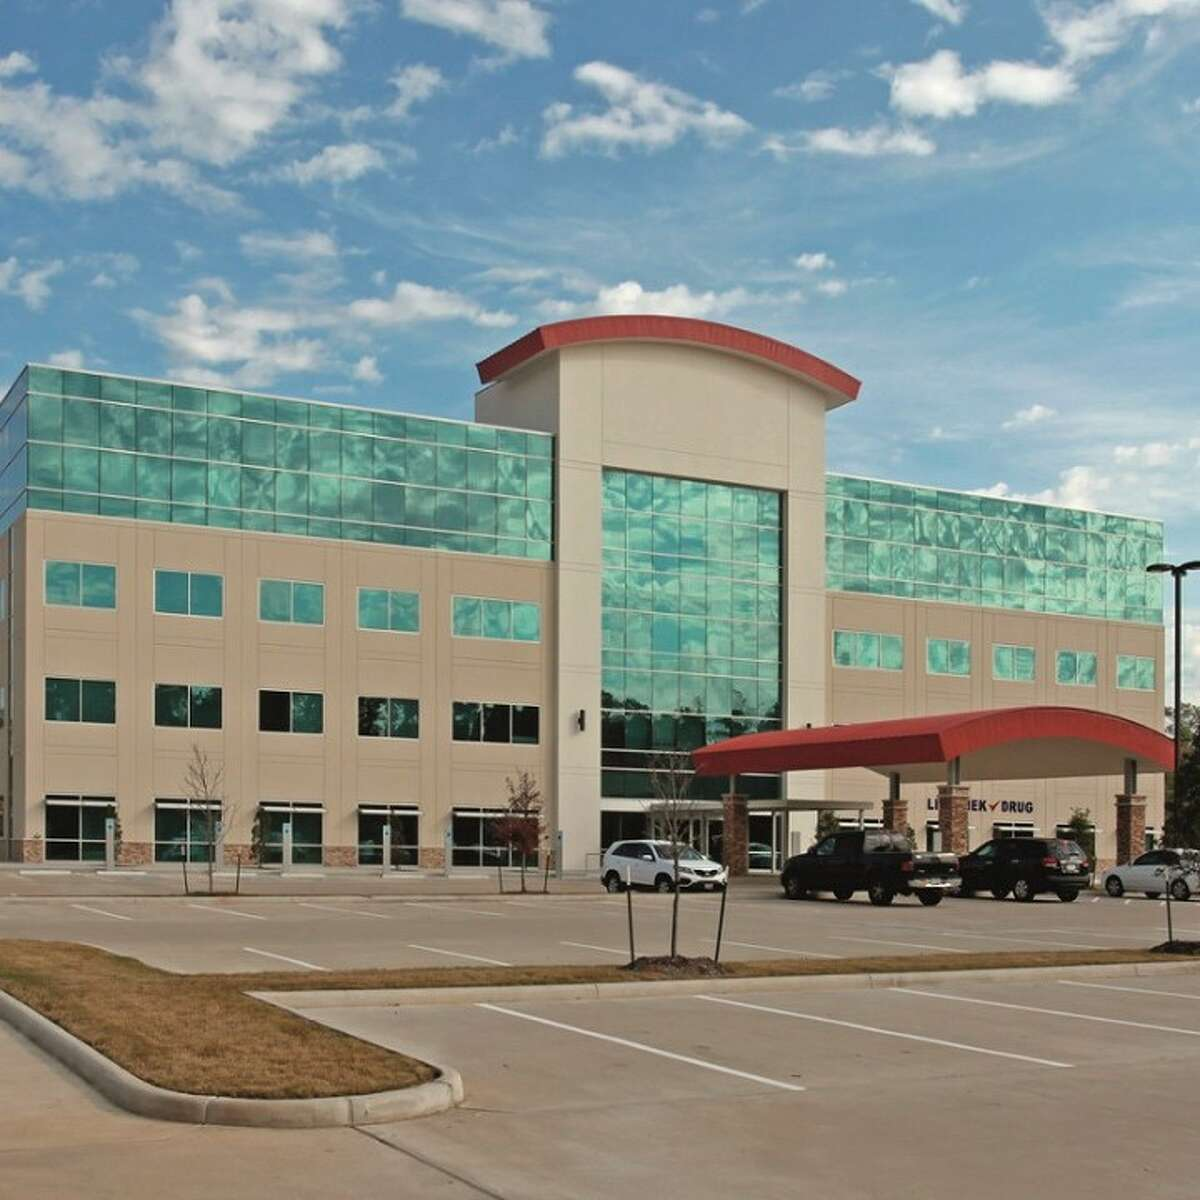 SHSU Physicians will open a medical clinic at 690 South Loop 336 West in Conroe. It will offer a range of specialties, with a focus on primary care.